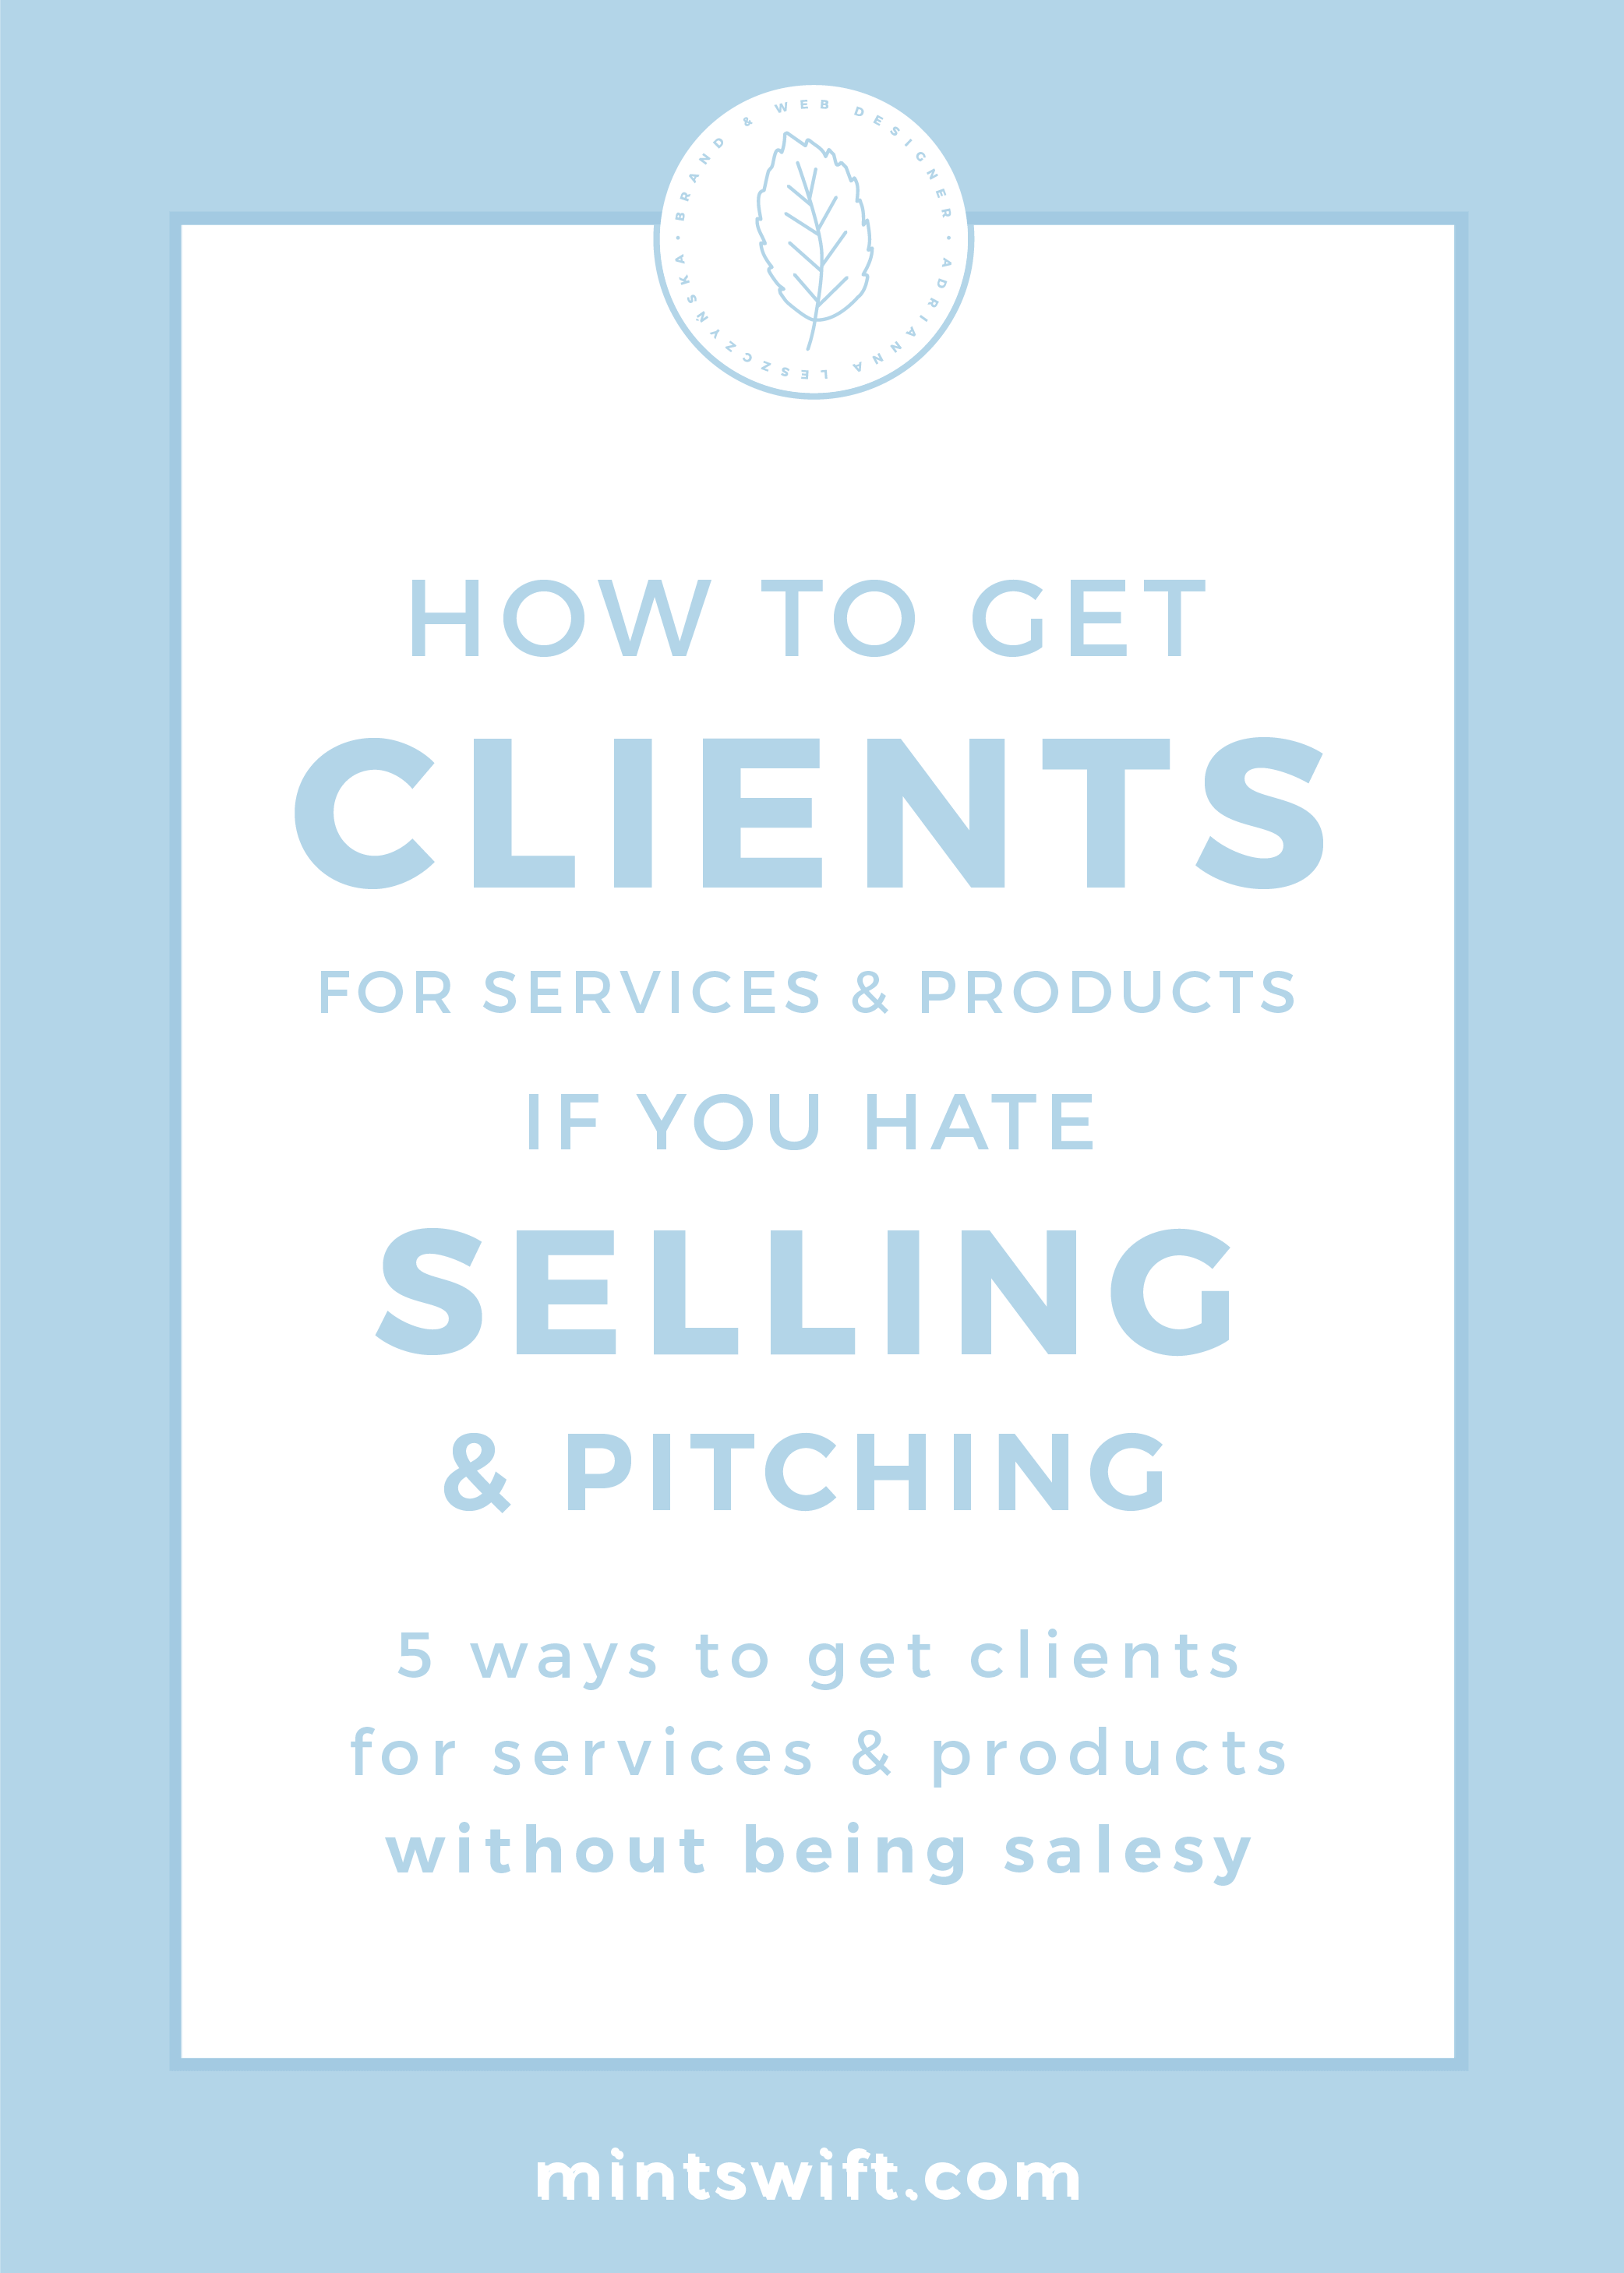 How to Get Clients For Services and Products if You Hate Selling and Pitching. 5 Ways to Get Clients for Services and Products Without Being Salesy by MintSwift